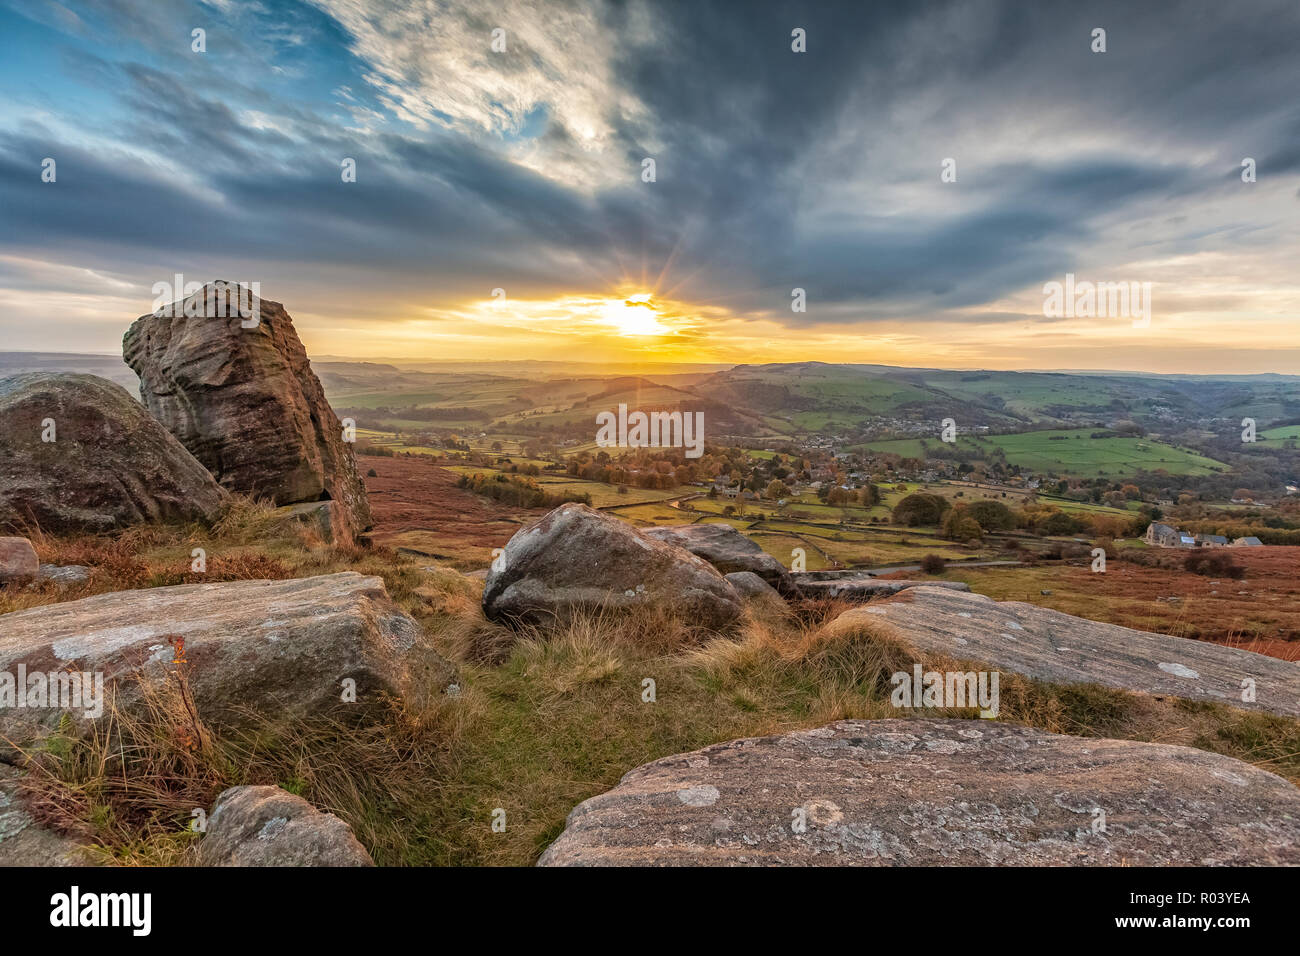 beautiful landscape photograph of a sunset at Curbar Edge, Peak District National Park, Derbyshire, England October 2018 - Stock Image